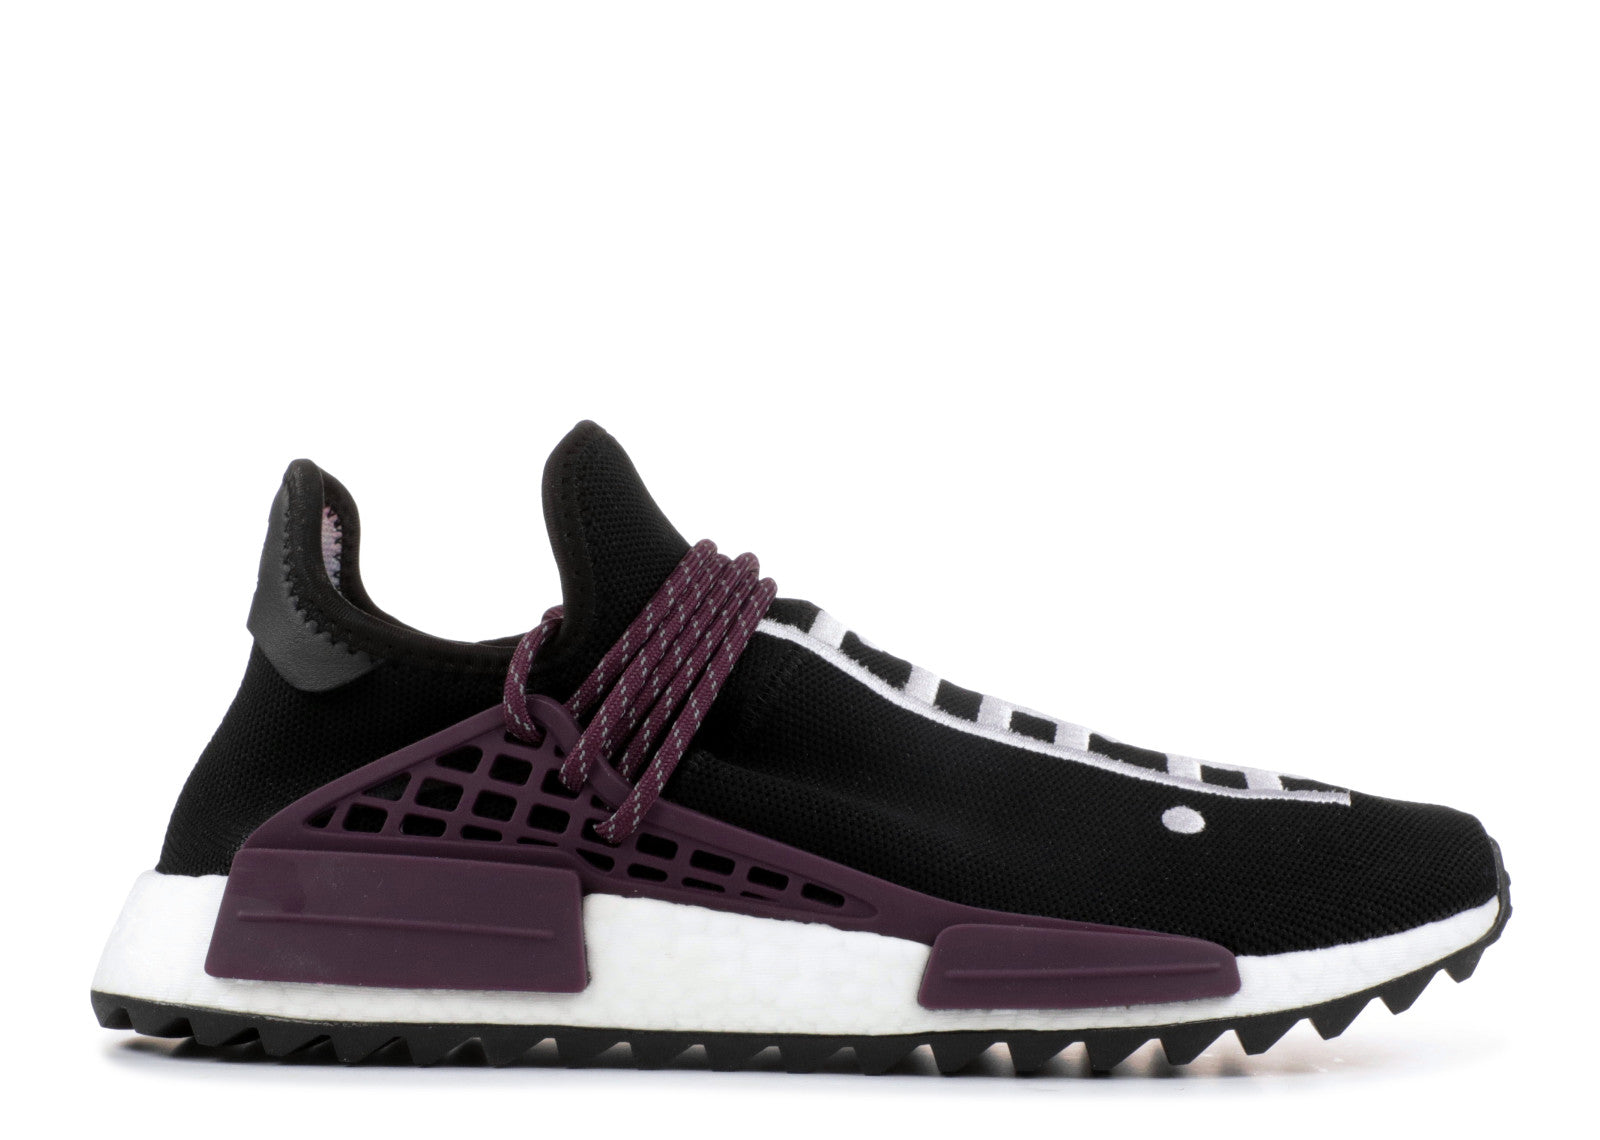 los angeles 78d90 1fd6c ADIDAS HUMAN RACE NMD